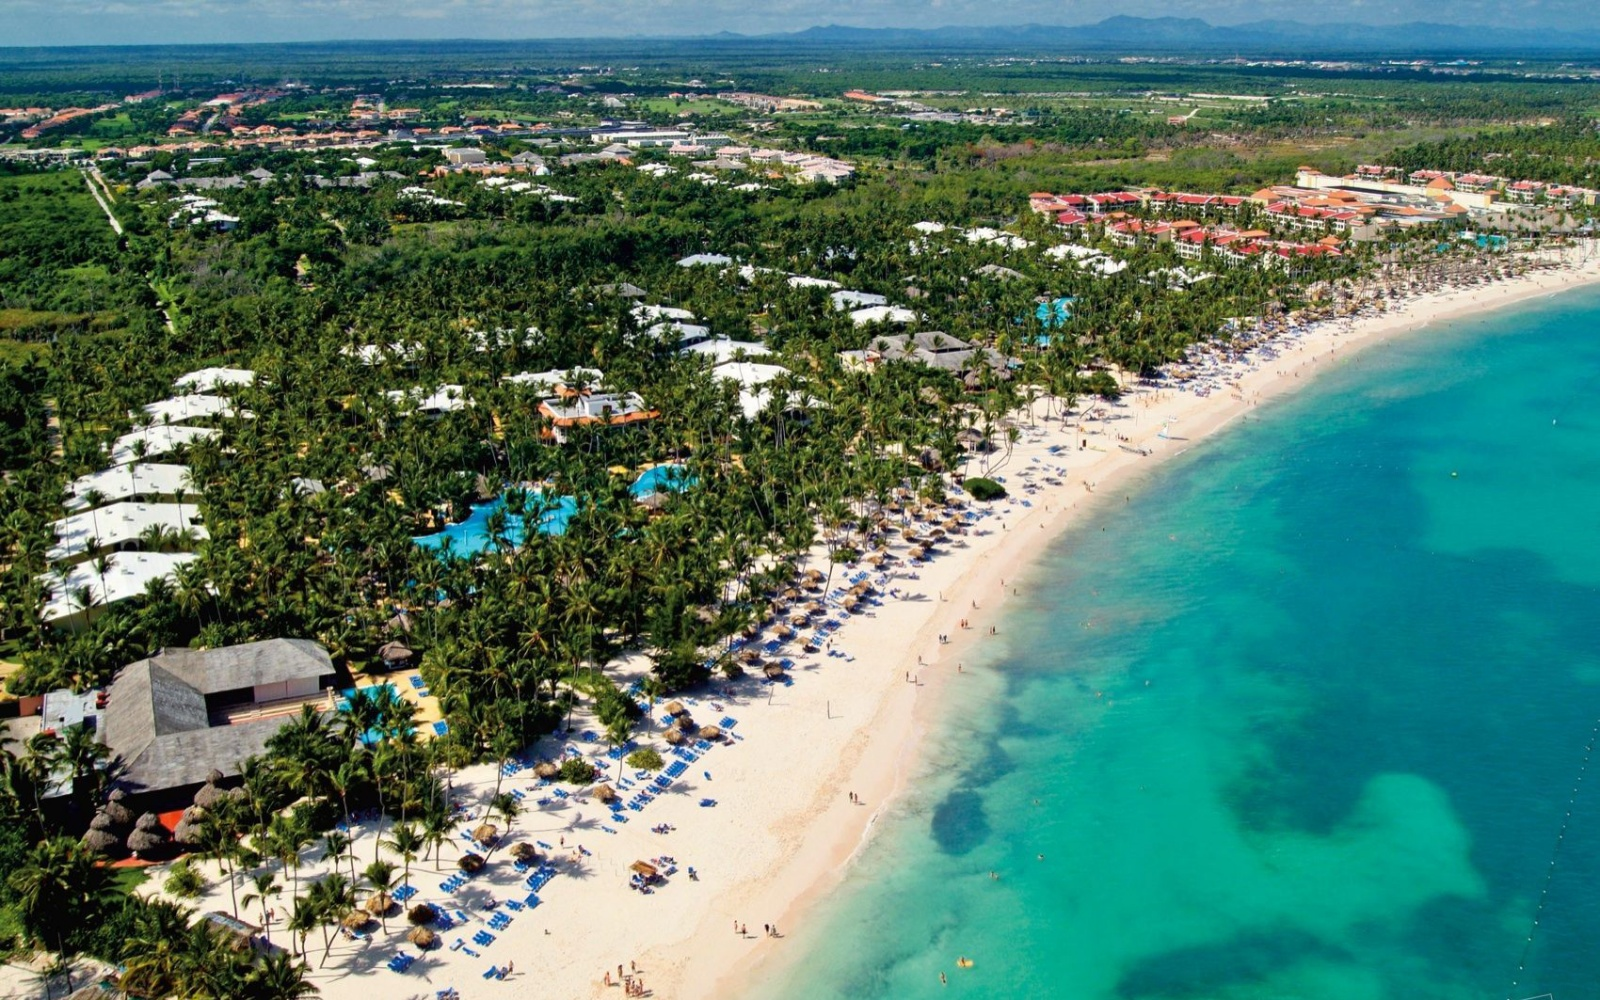 aerial of Meliã Caribe Tropical, DR